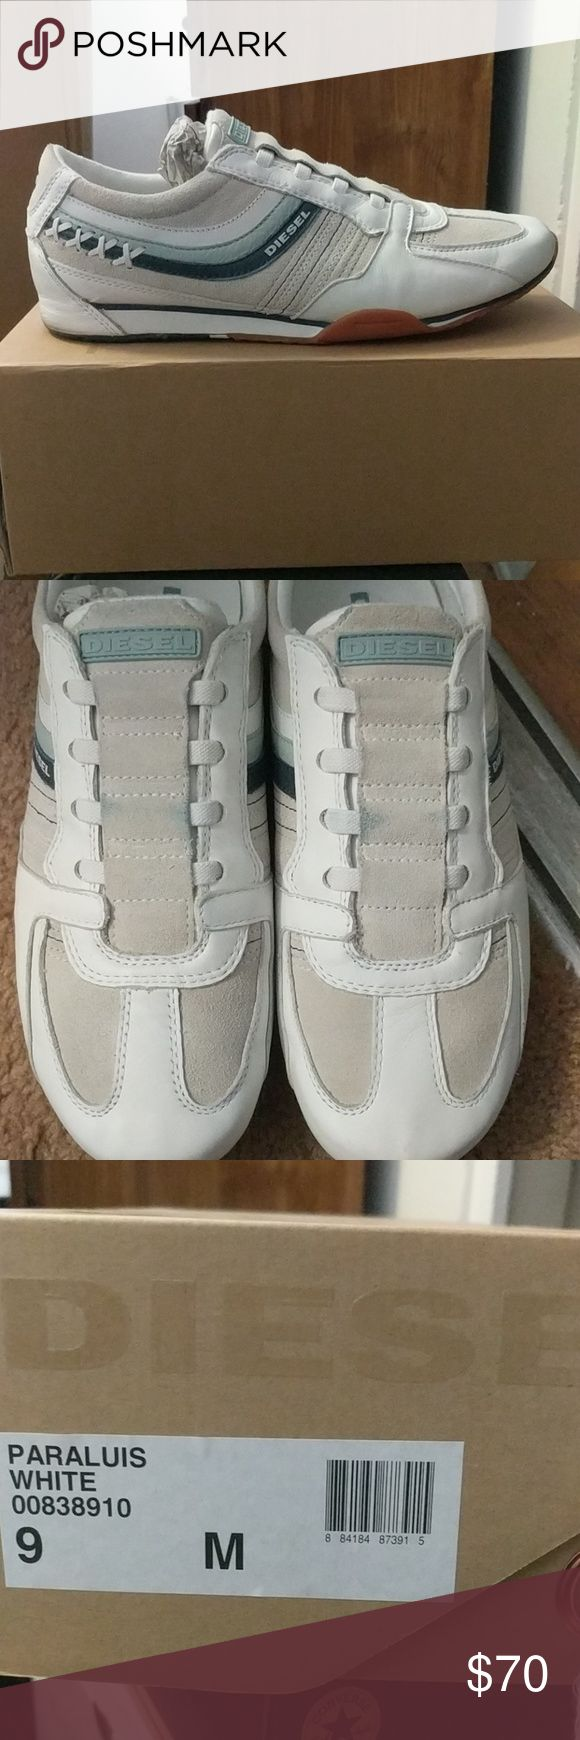 Mens Diesel shoes size 9 Paraluis White Mens Diesel shoes size 9 Paraluis White  Worn at most 3x with minor blue stain on top of the shoe. Diesel Shoes Sneakers